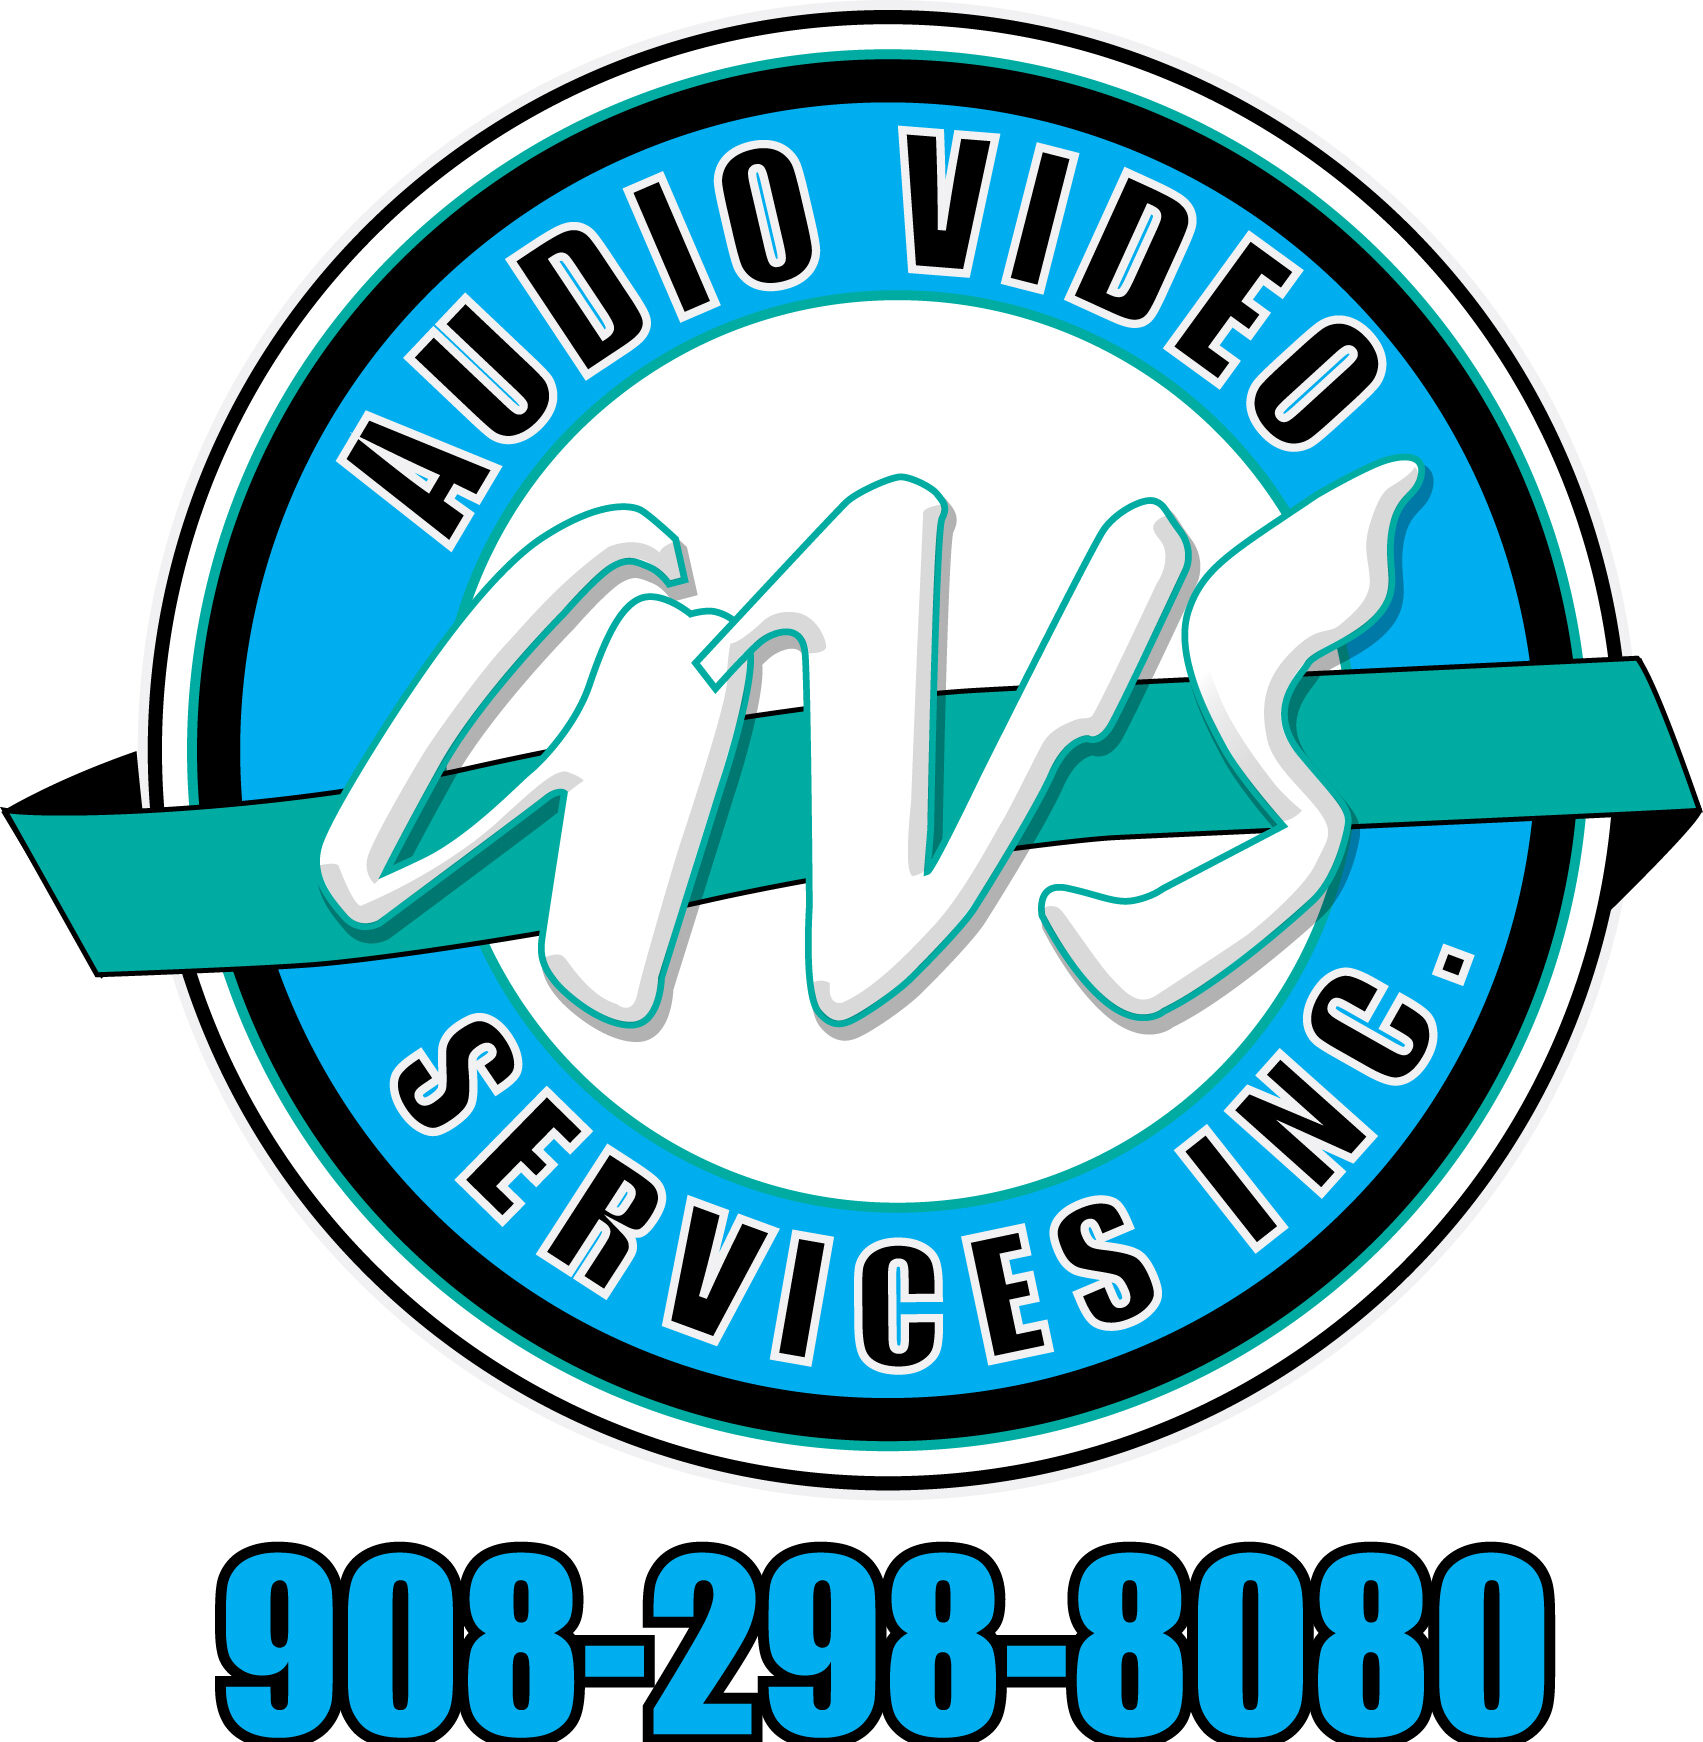 Audio Video Services Inc